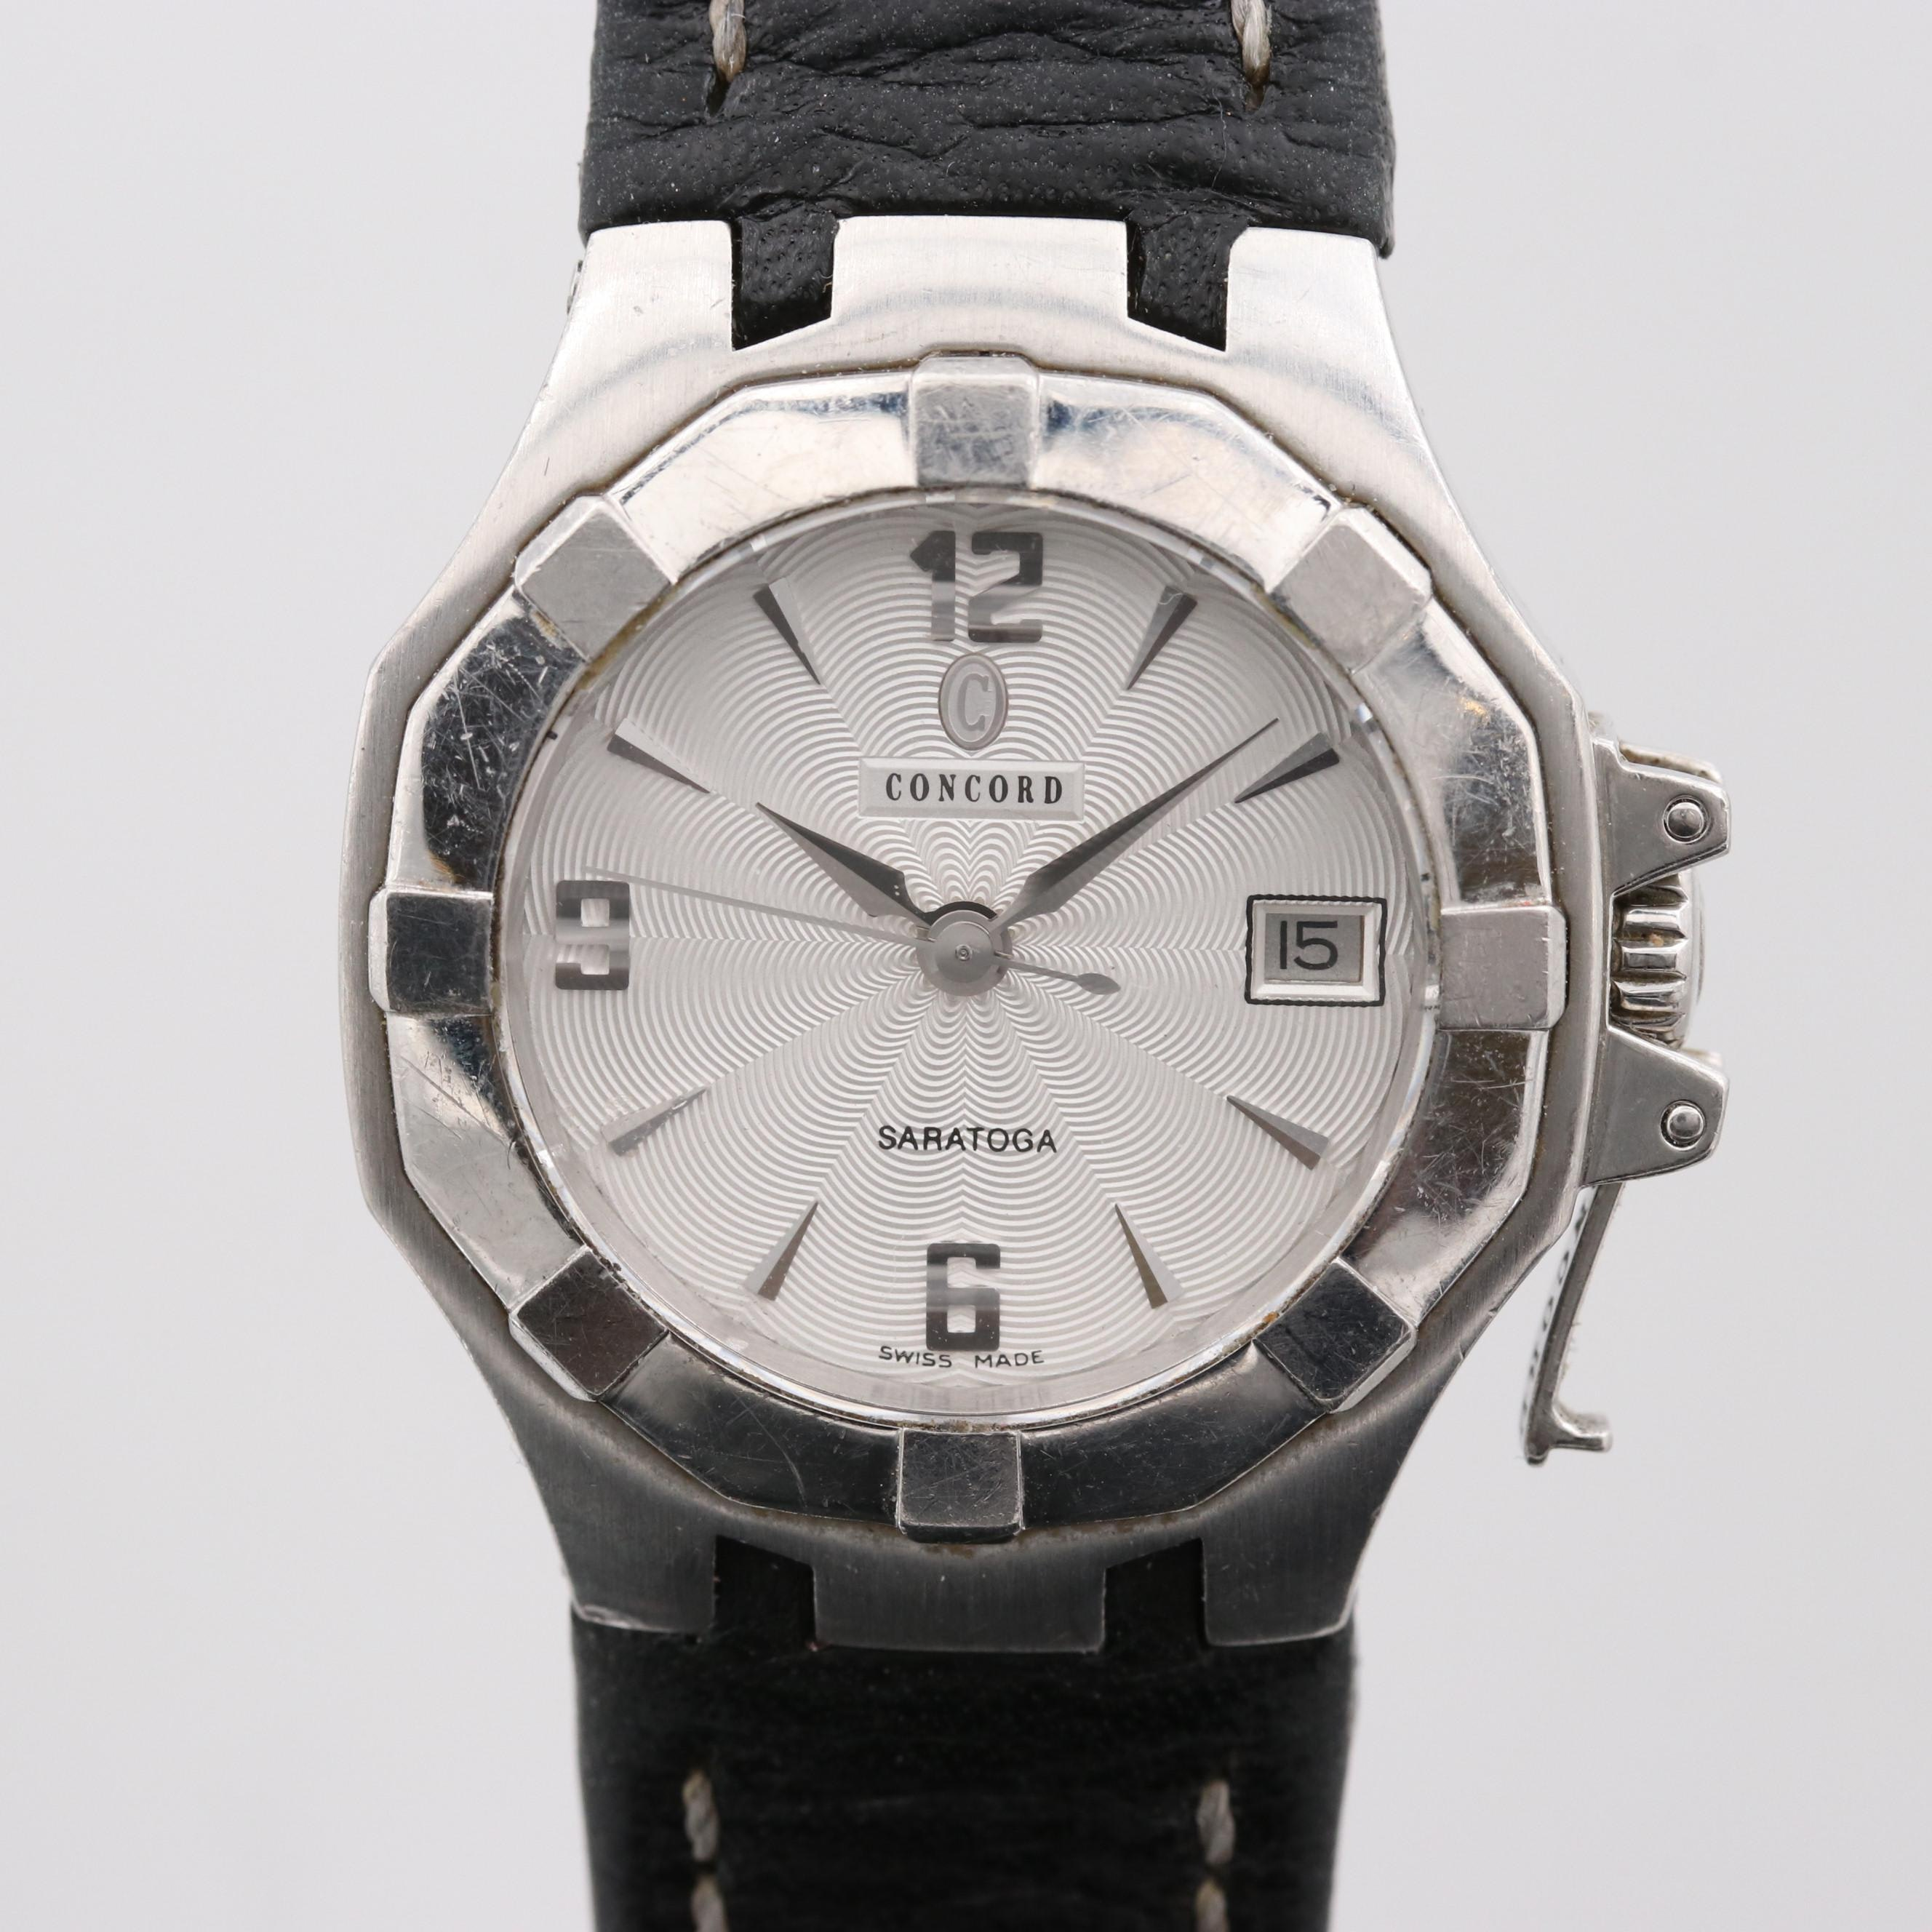 Concord Saratoga Stainless Steel Quartz Wristwatch With Date Window